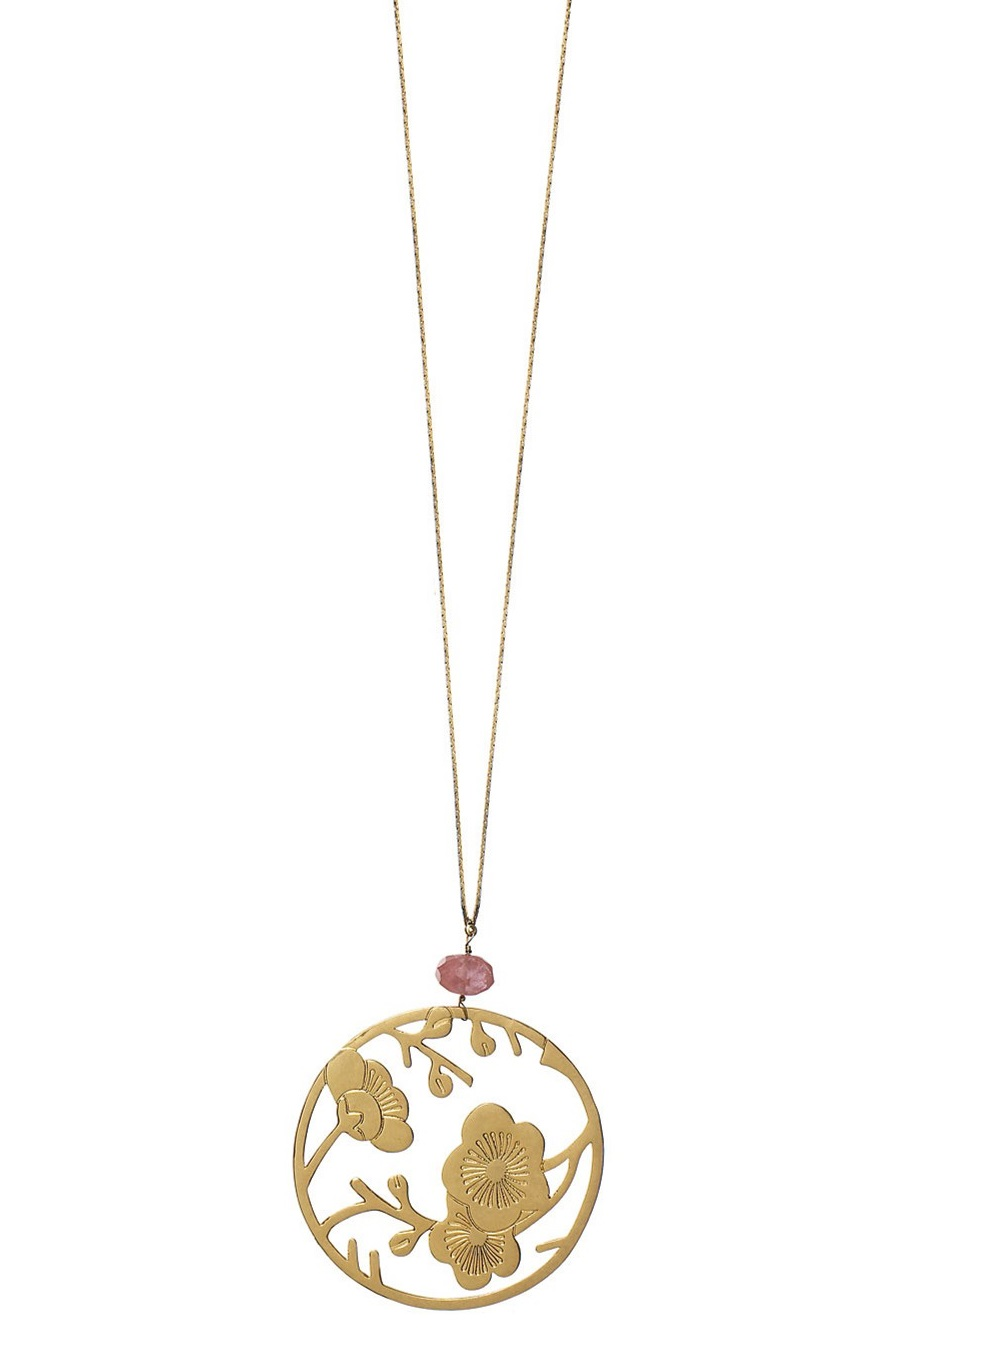 PILGRIM - Oriental - Pendant Necklace - Gold Plate & Cherry Quartz BNWT